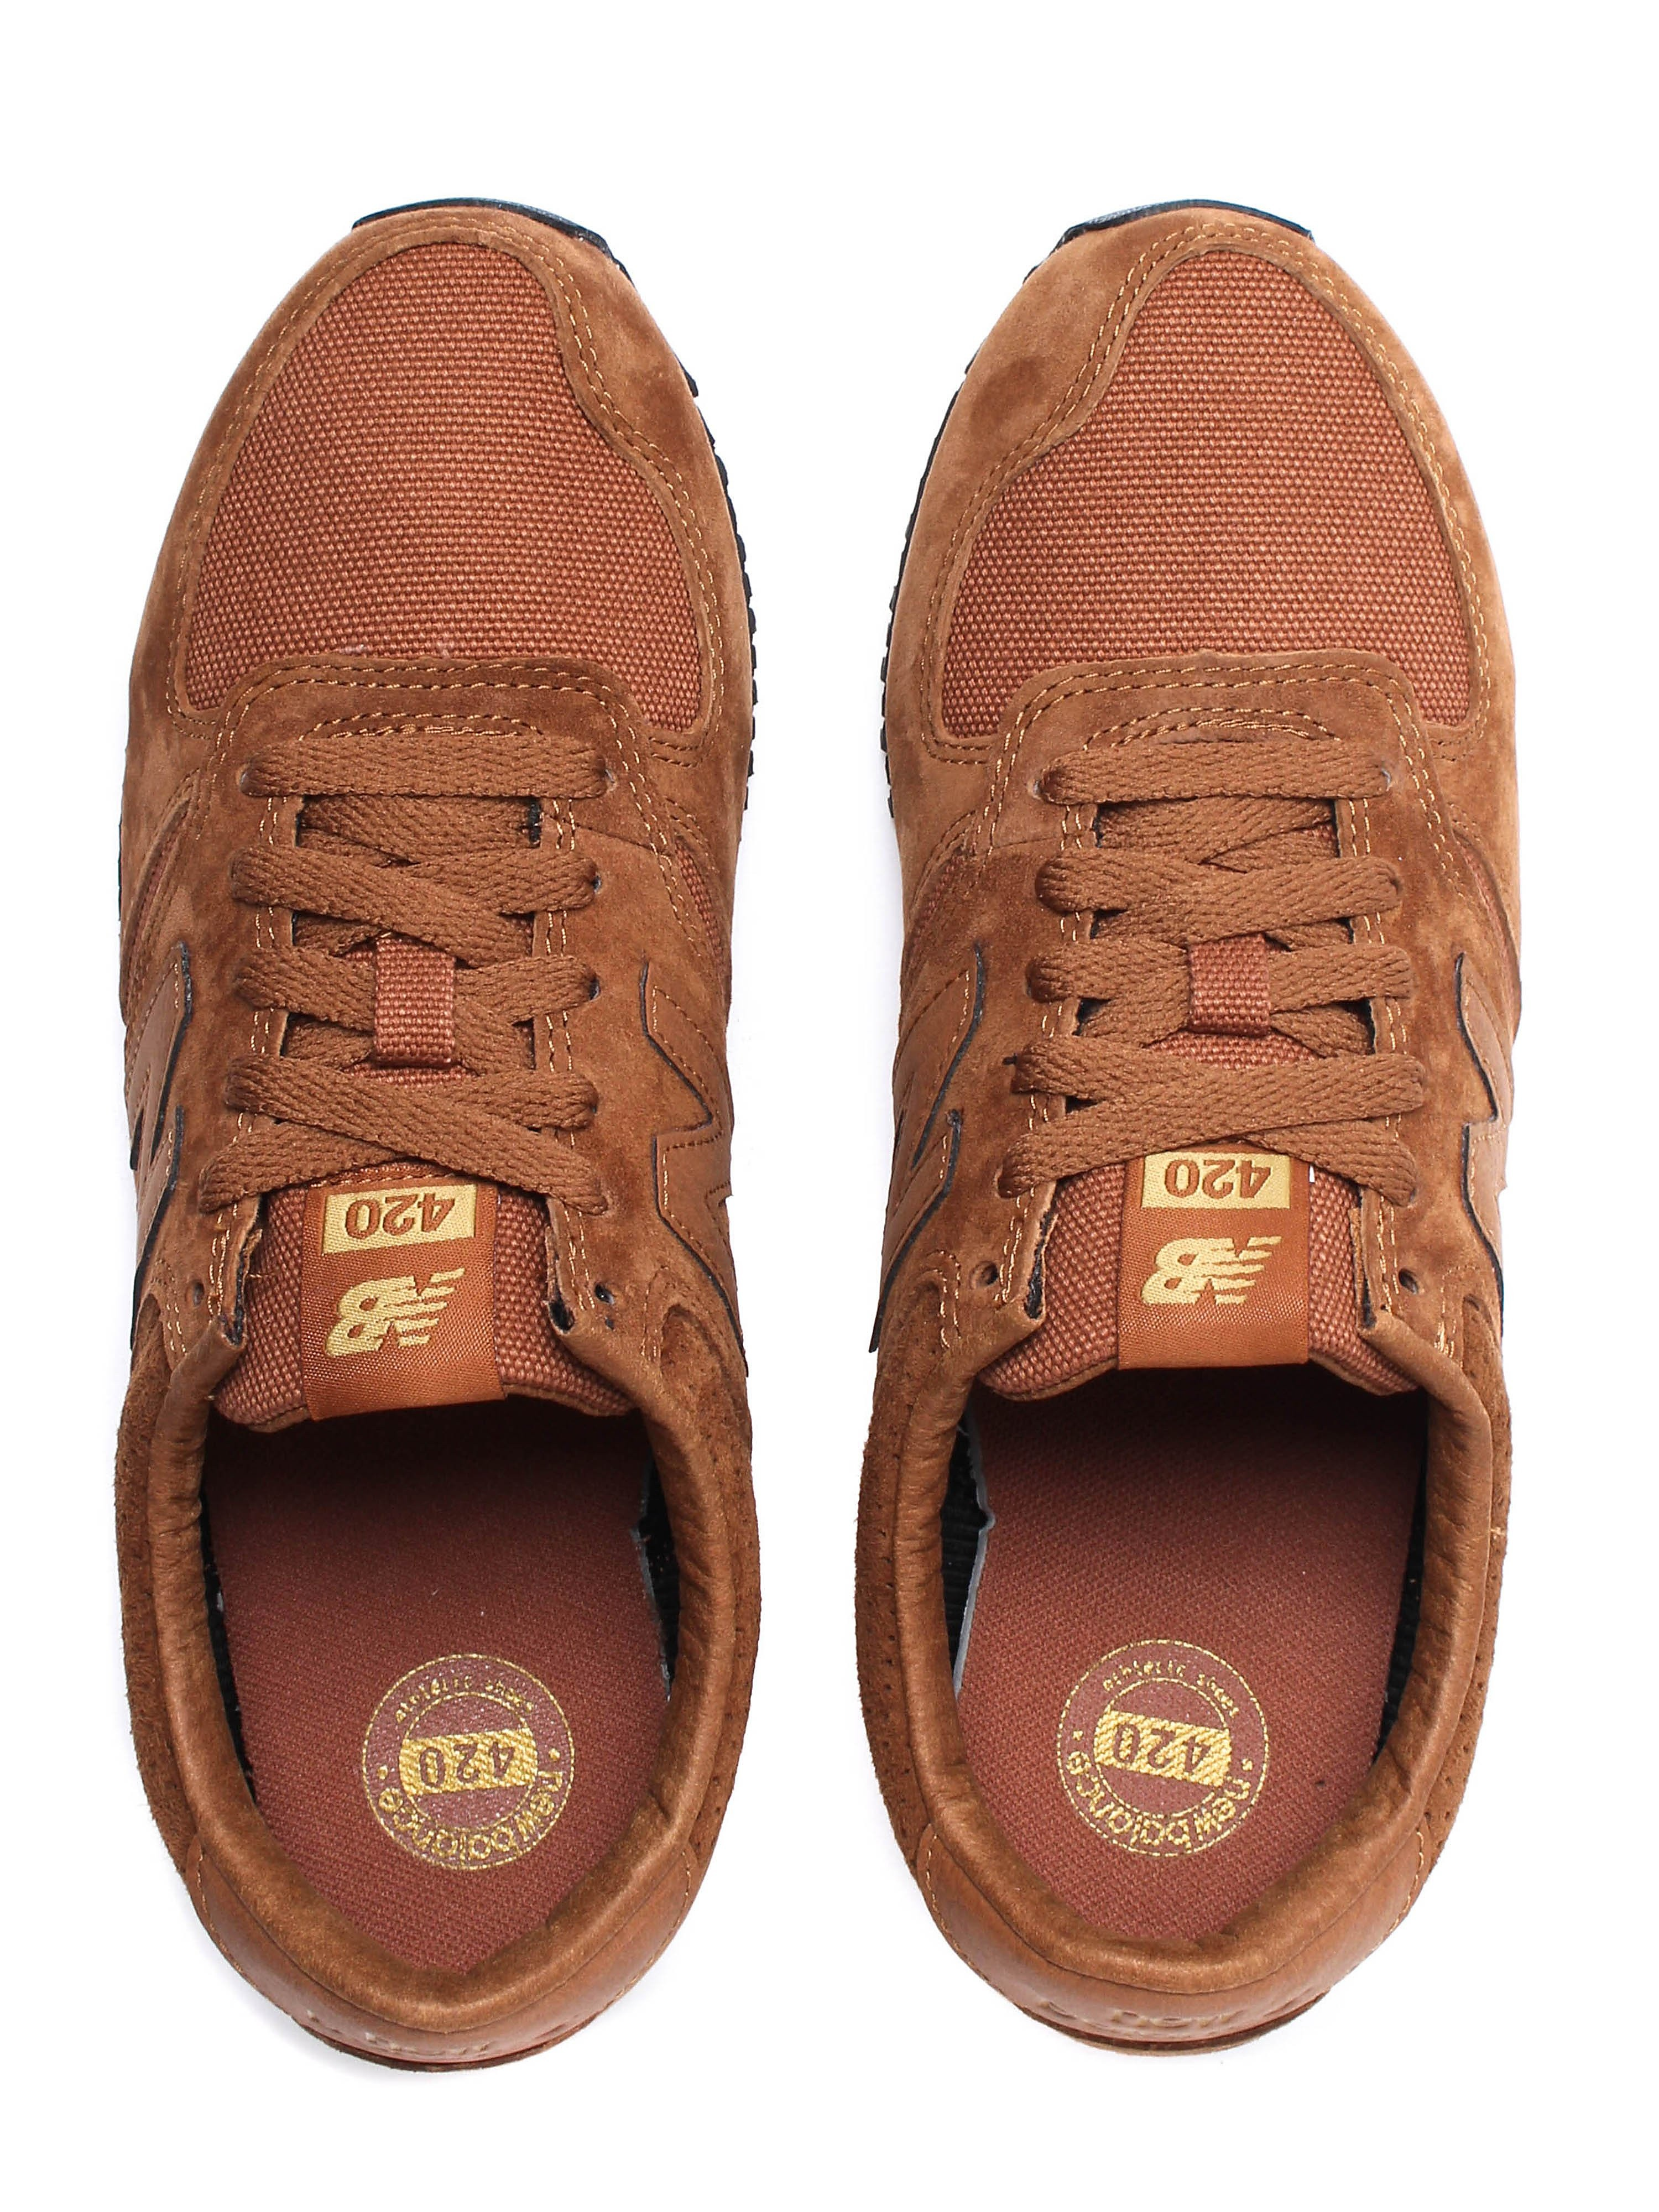 New Balance Women's 420 Trainers - Brown Suede